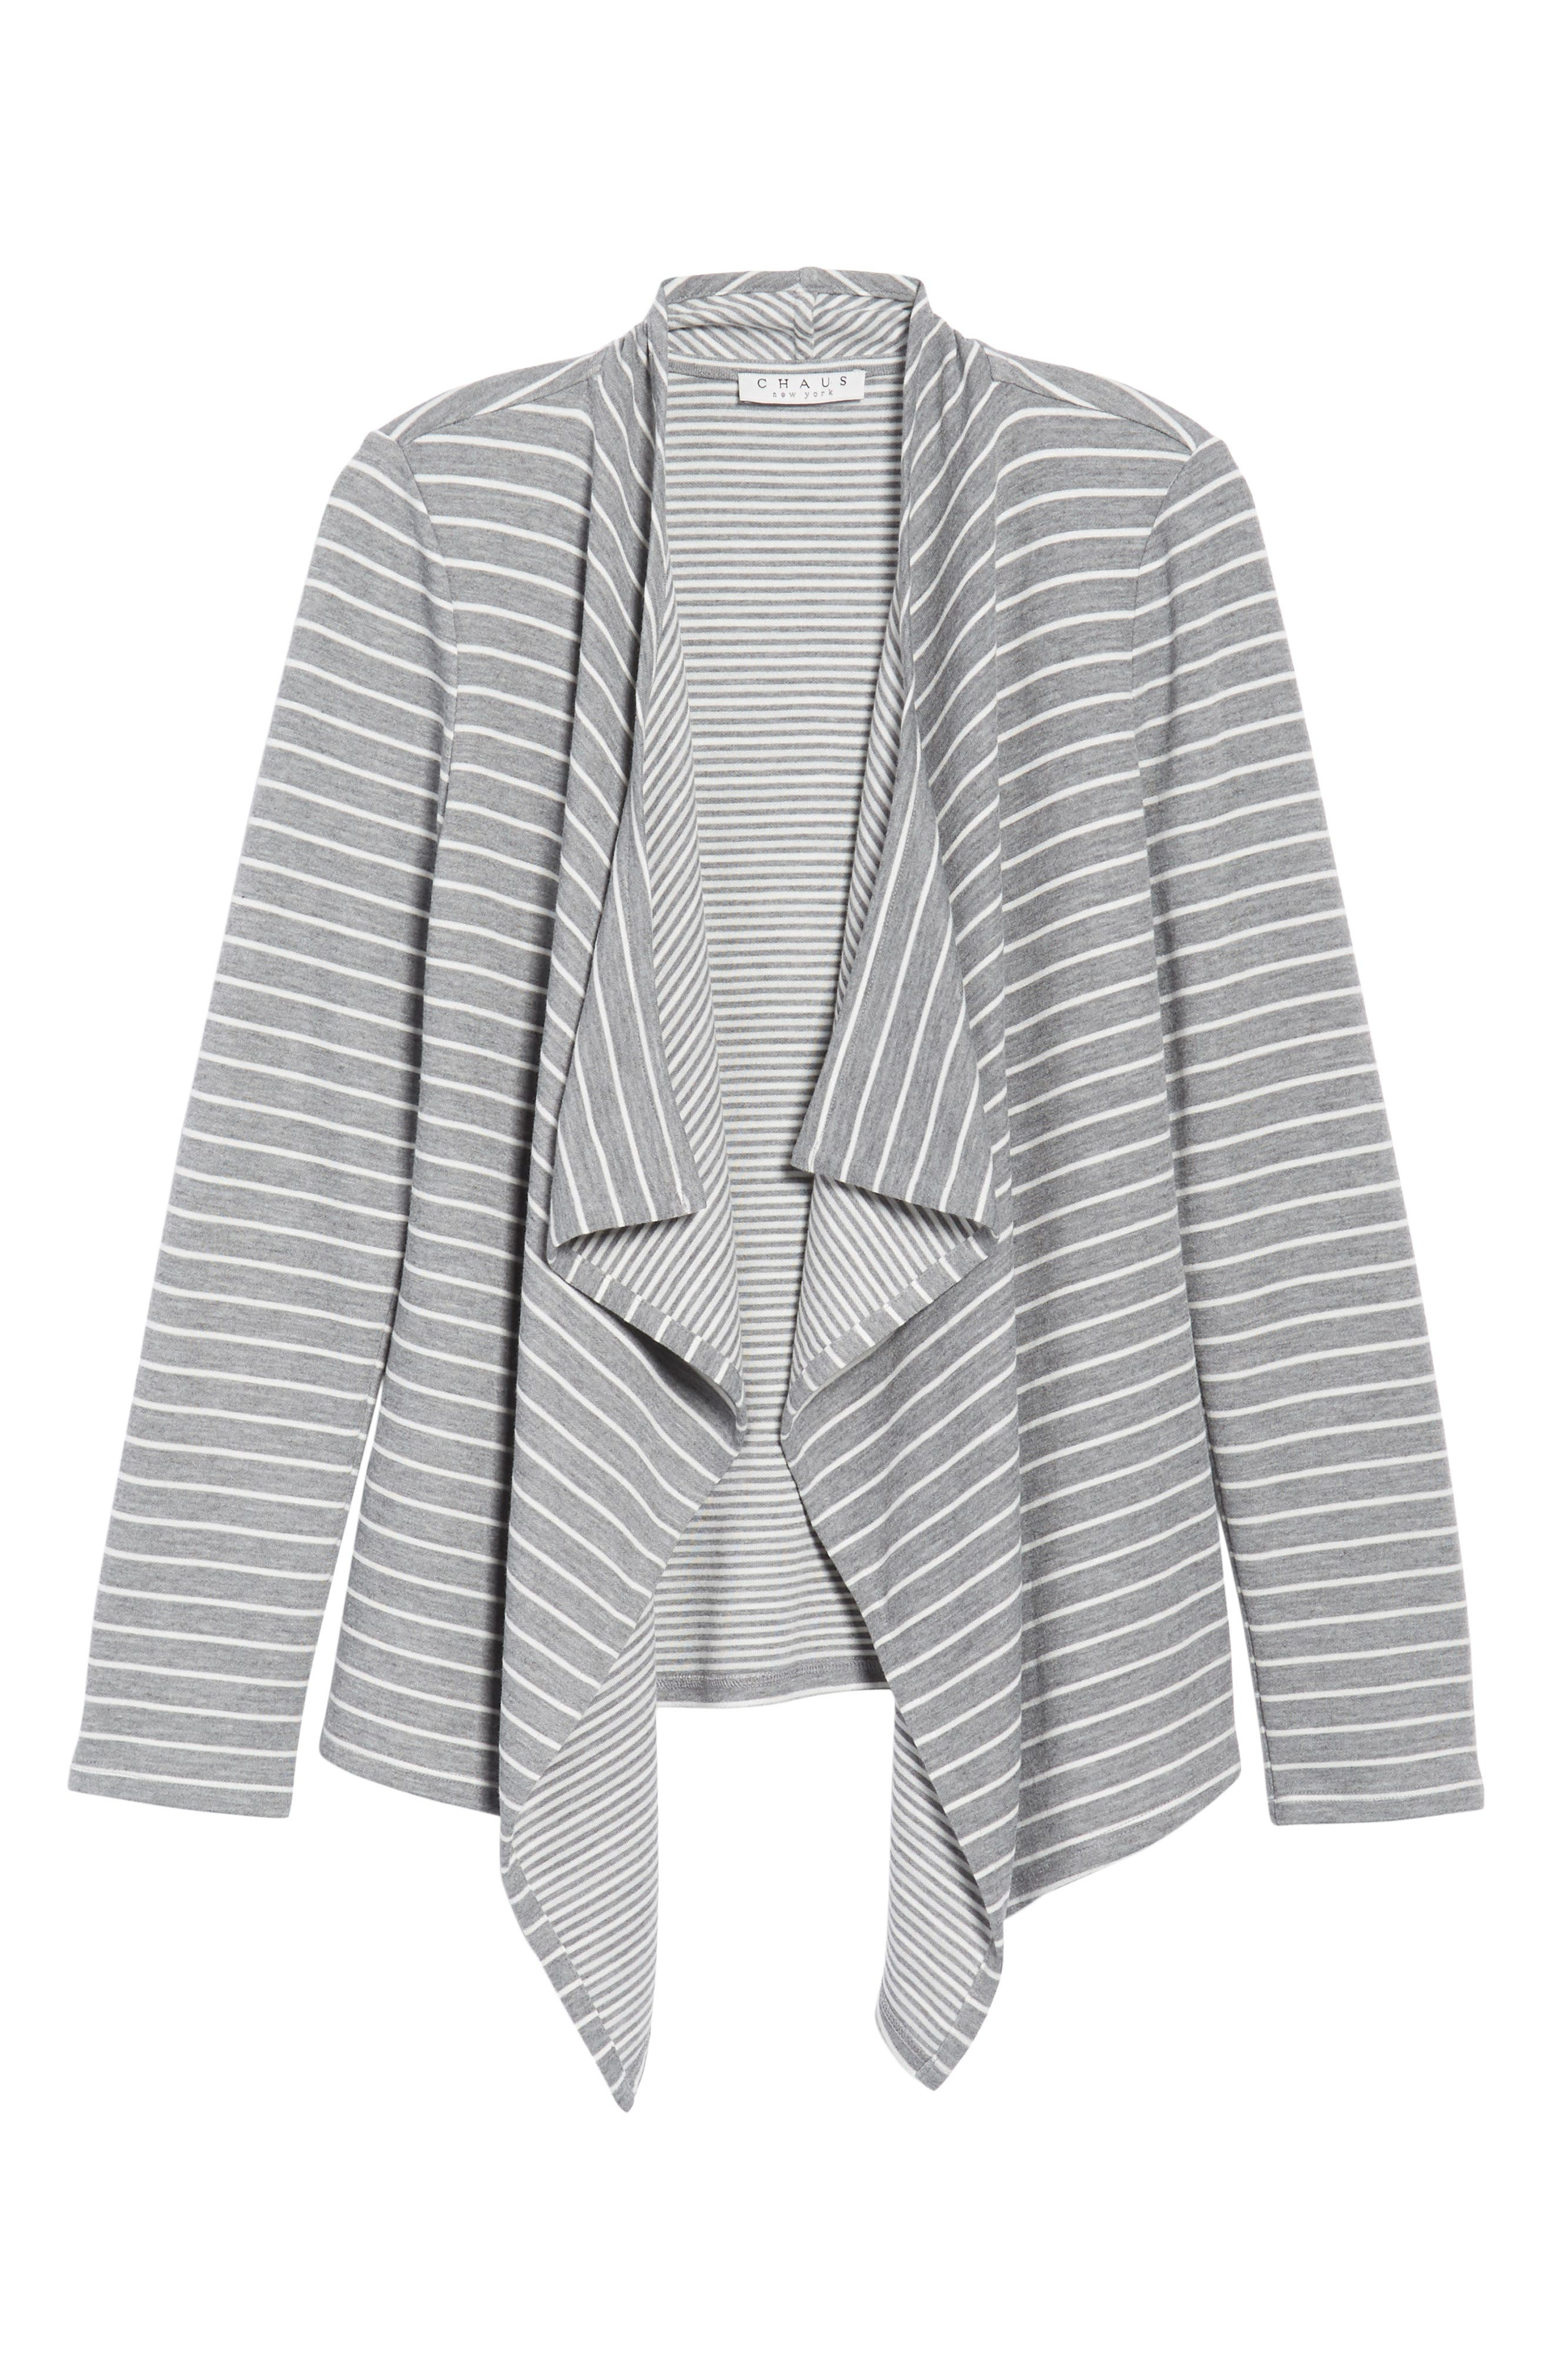 Mixed Stripe Cardigan,                             Alternate thumbnail 6, color,                             050-Grey Heather